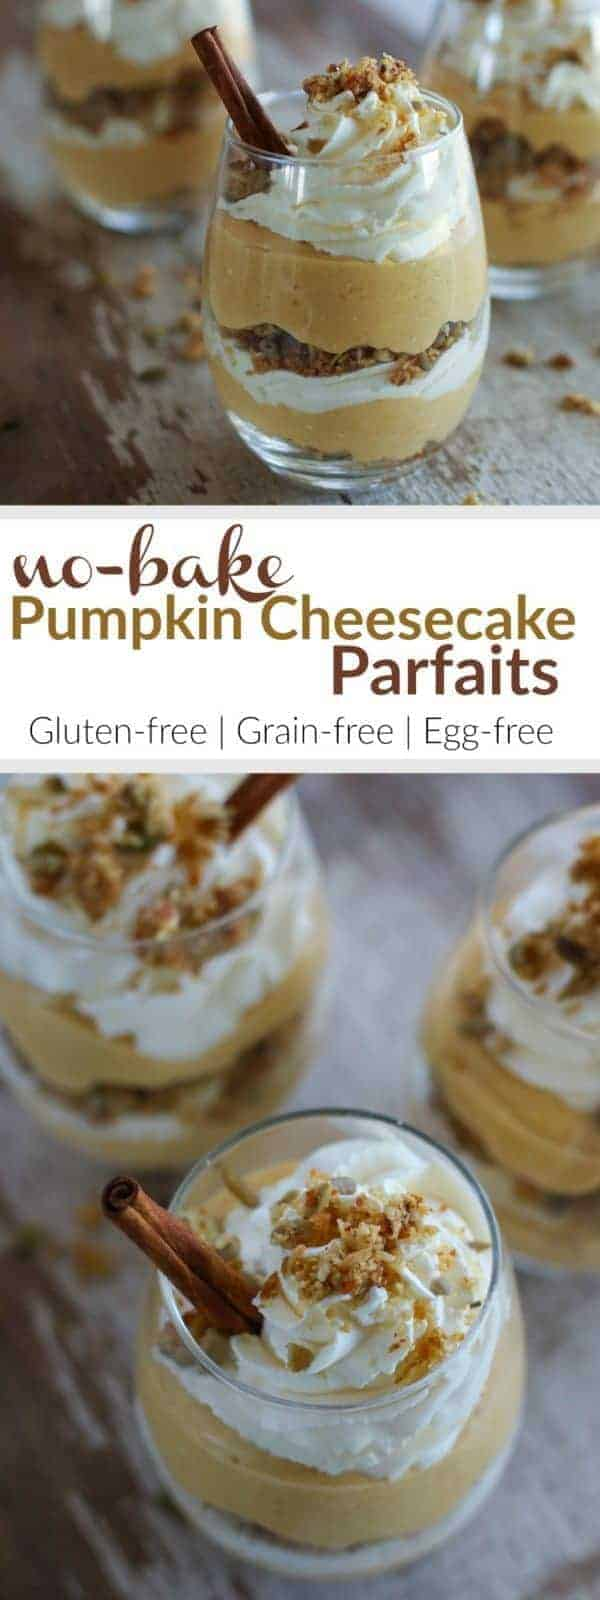 Impress your guests this Holiday season with these adorable No-Bake Pumpkin Cheesecake Parfaits. This gluten-free, grain-free and egg-free dessert combines the ever-so-popular pumpkin pie and traditional cheesecake | therealfoodrds.com